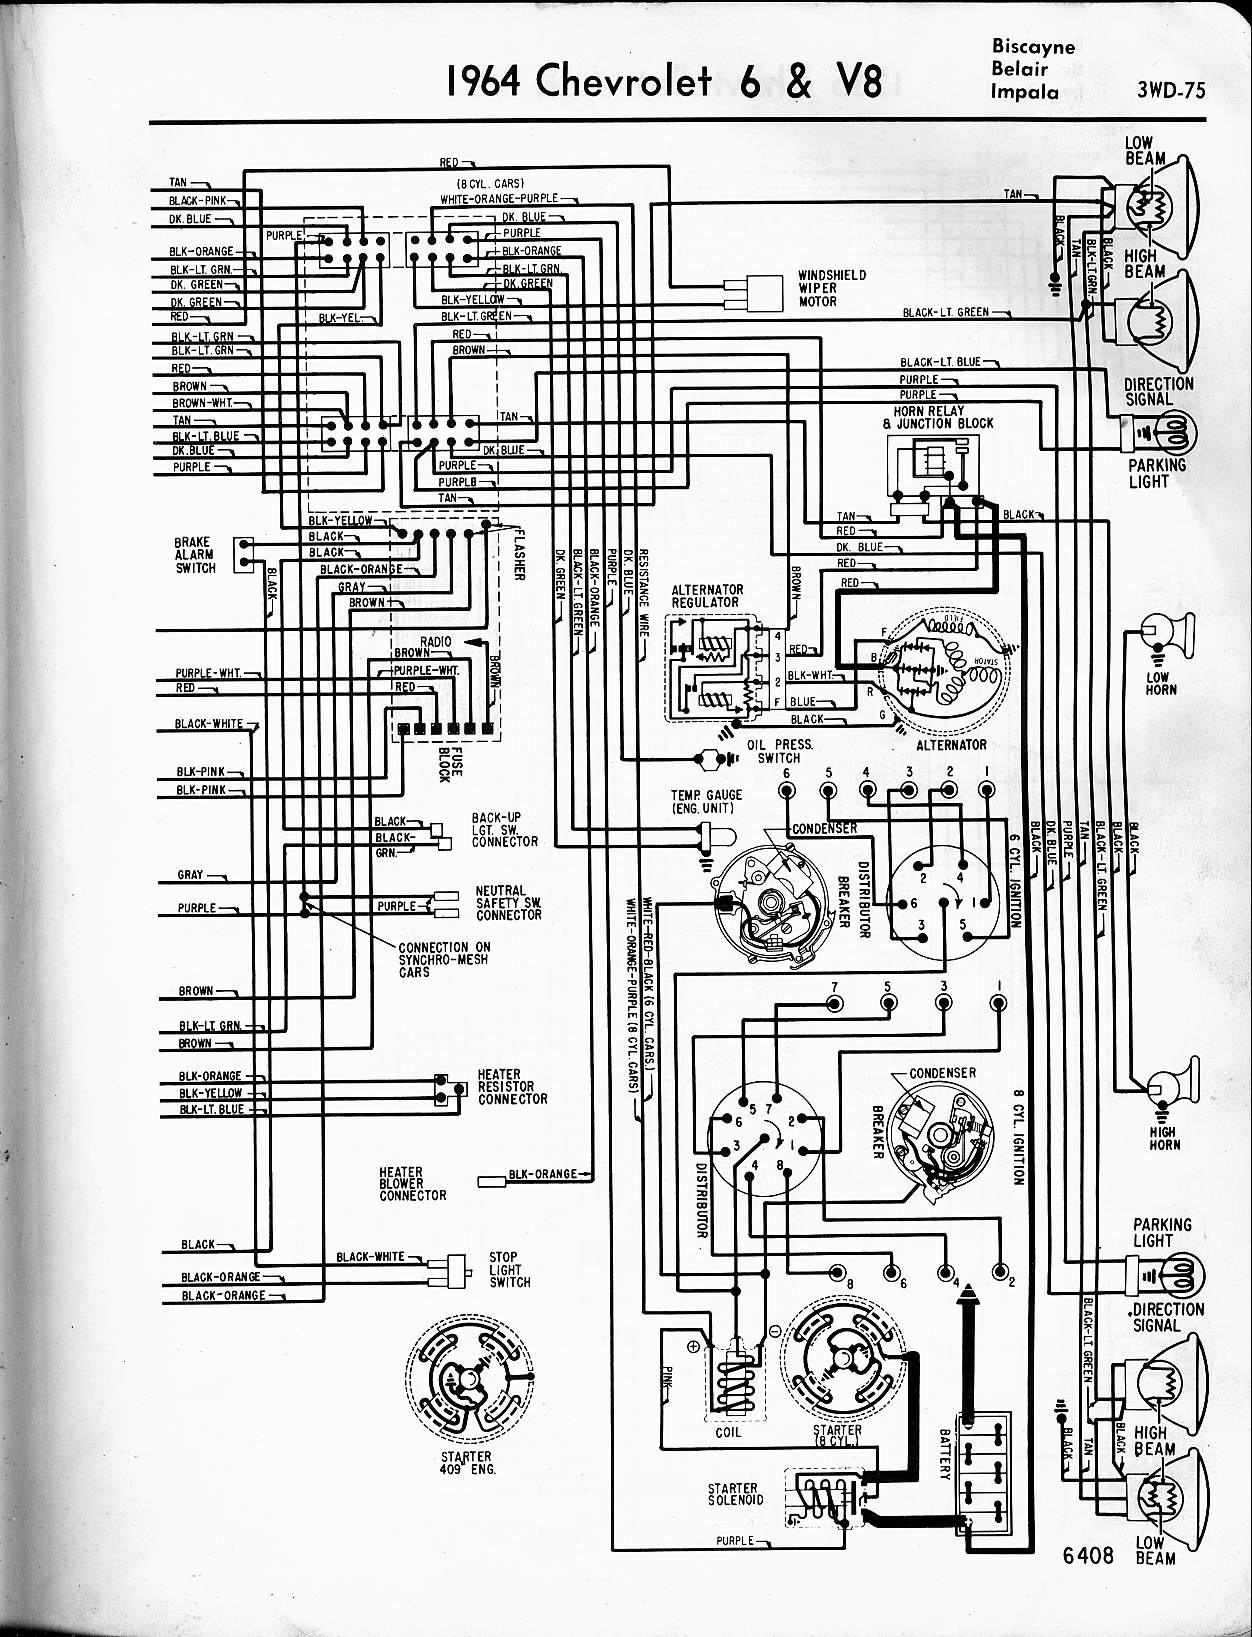 65 Bel Air Wire Diagram Wiring Library. 1964 6 V8 Biscayne Belair Impala 57 65 Chevy Wiring Diagrams. Chevrolet. 1968 327 Chevy Distributor Wiring Diagram At Scoala.co